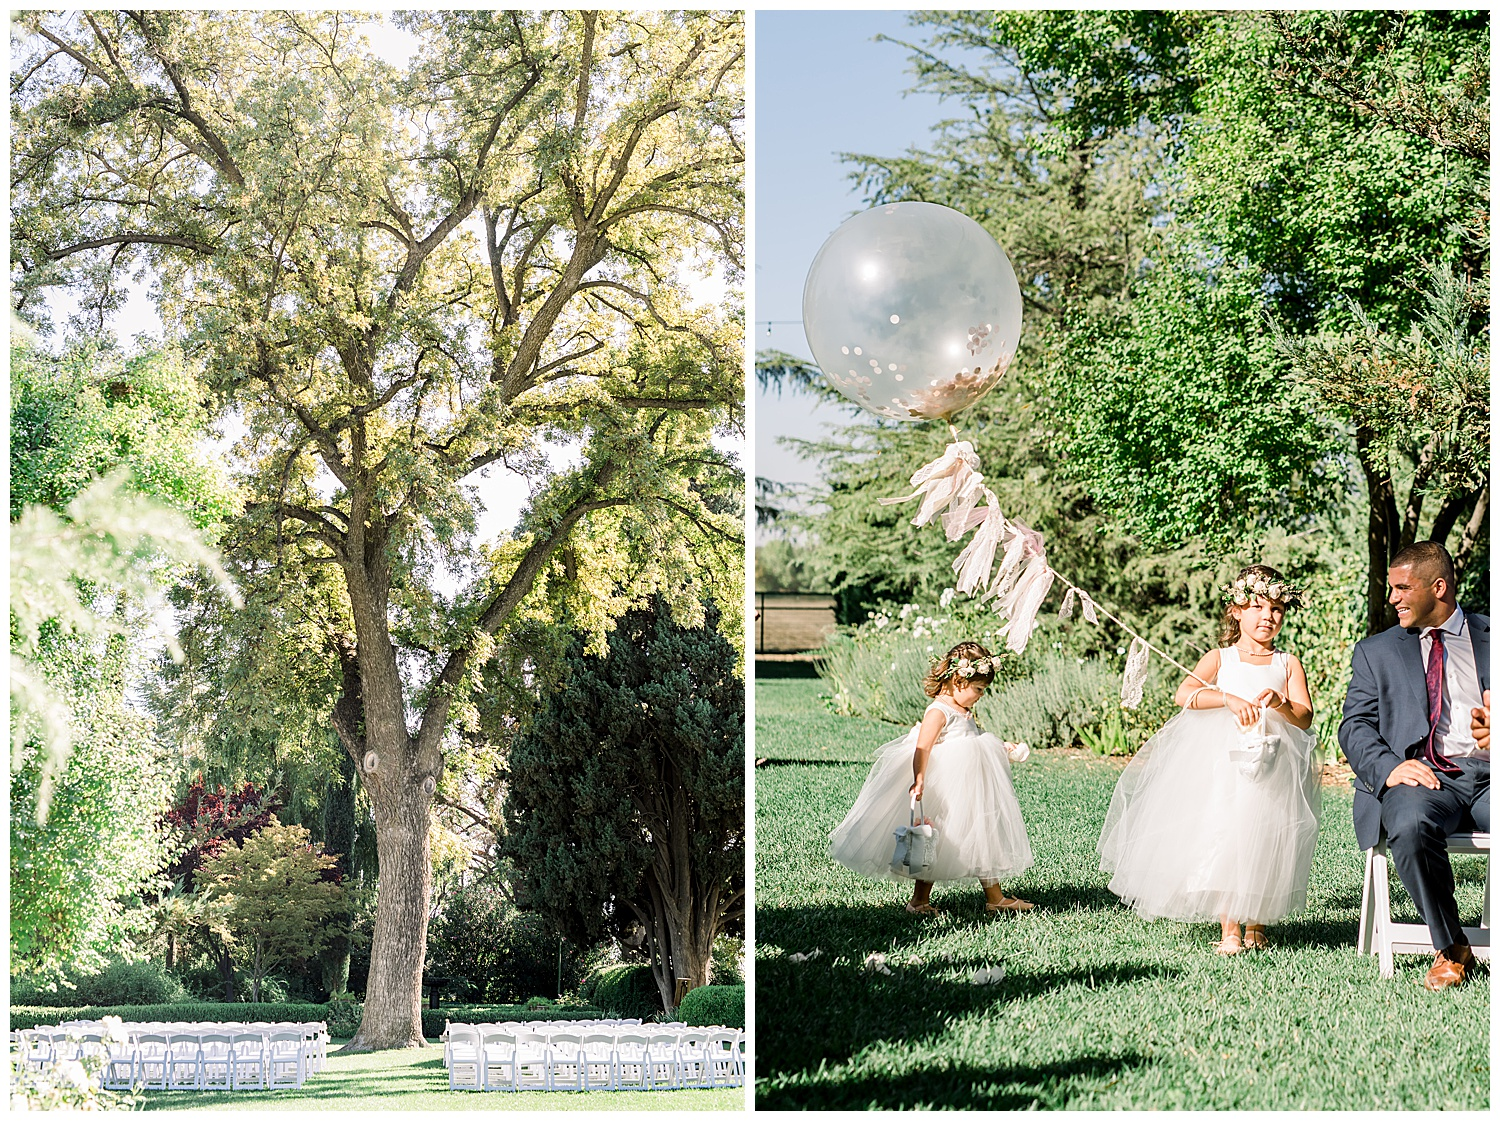 Janine_Licare_Photography_San_Francisco_Wedding_Photographer_Carneros_Tyge_Williams_Sonoma_Napa_0228.jpg